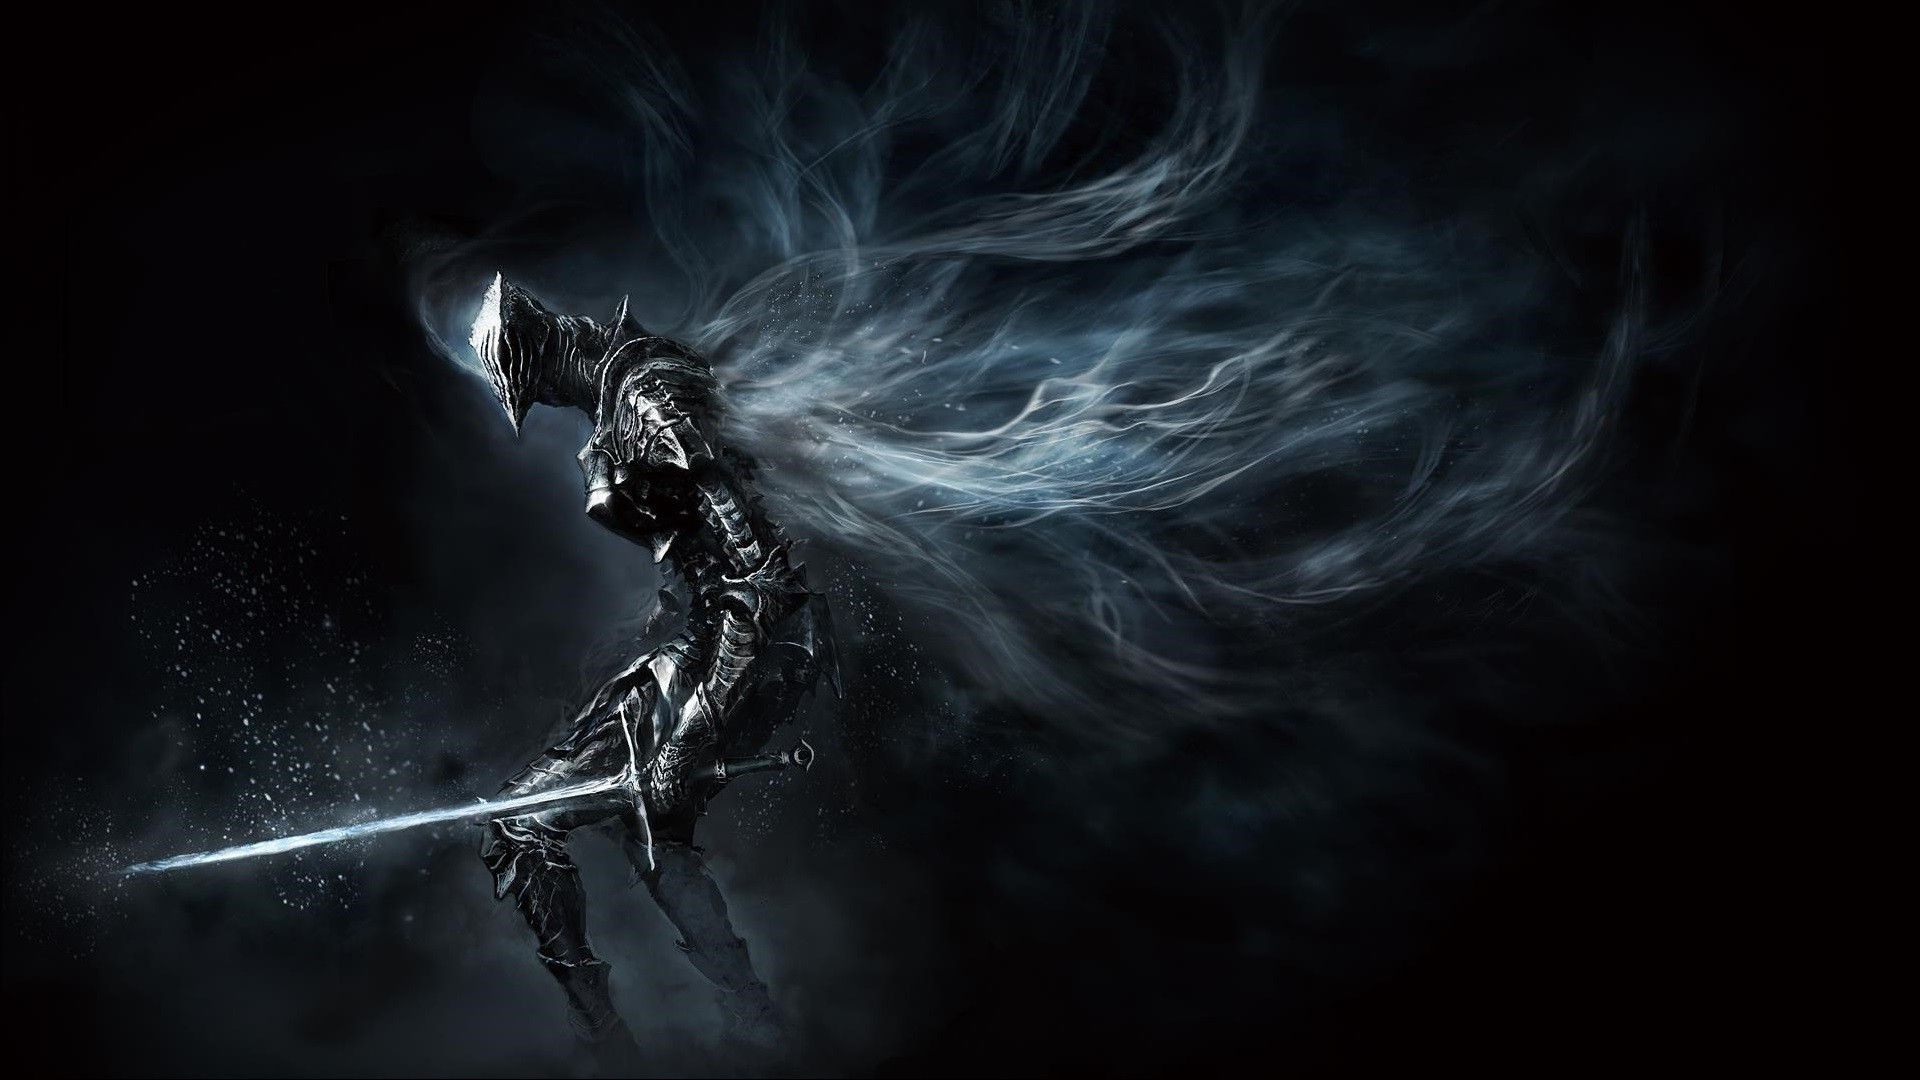 Res 1920x1080 Dark Souls Dark Souls Iii Video Games Artwork